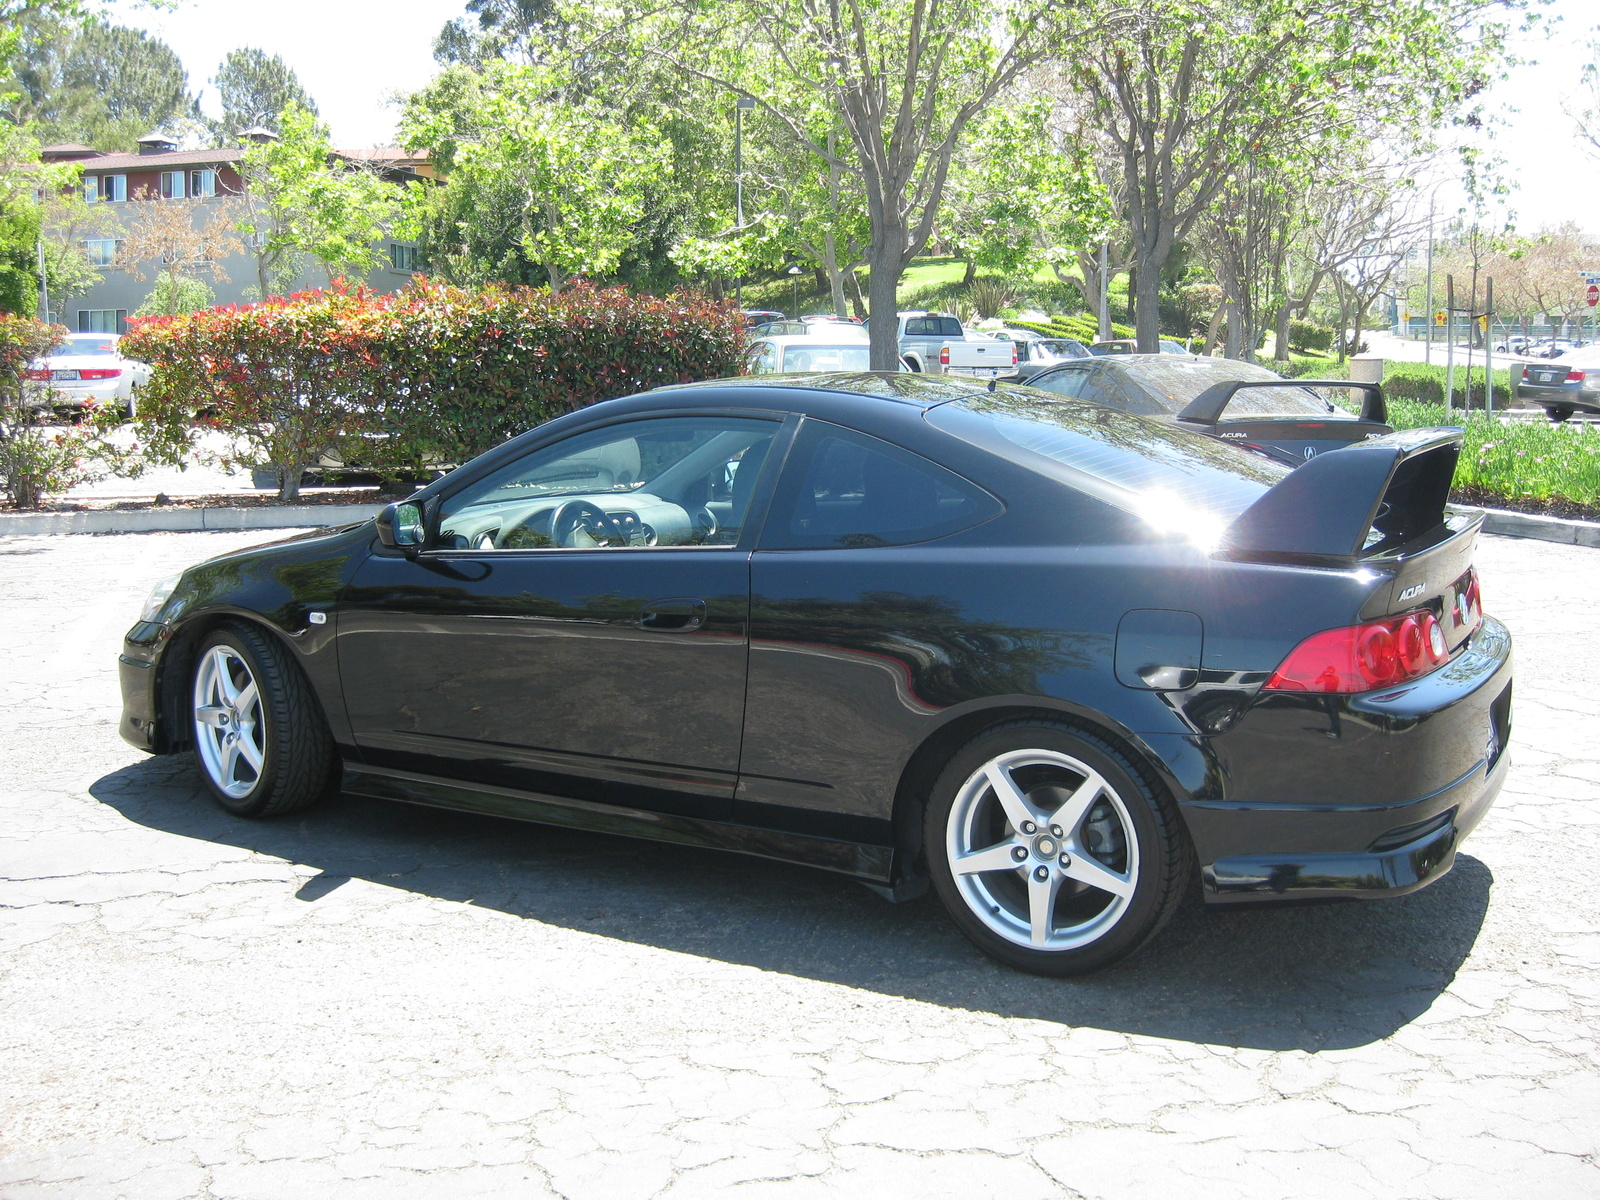 2005 Acura RSX Type-S photo - 8